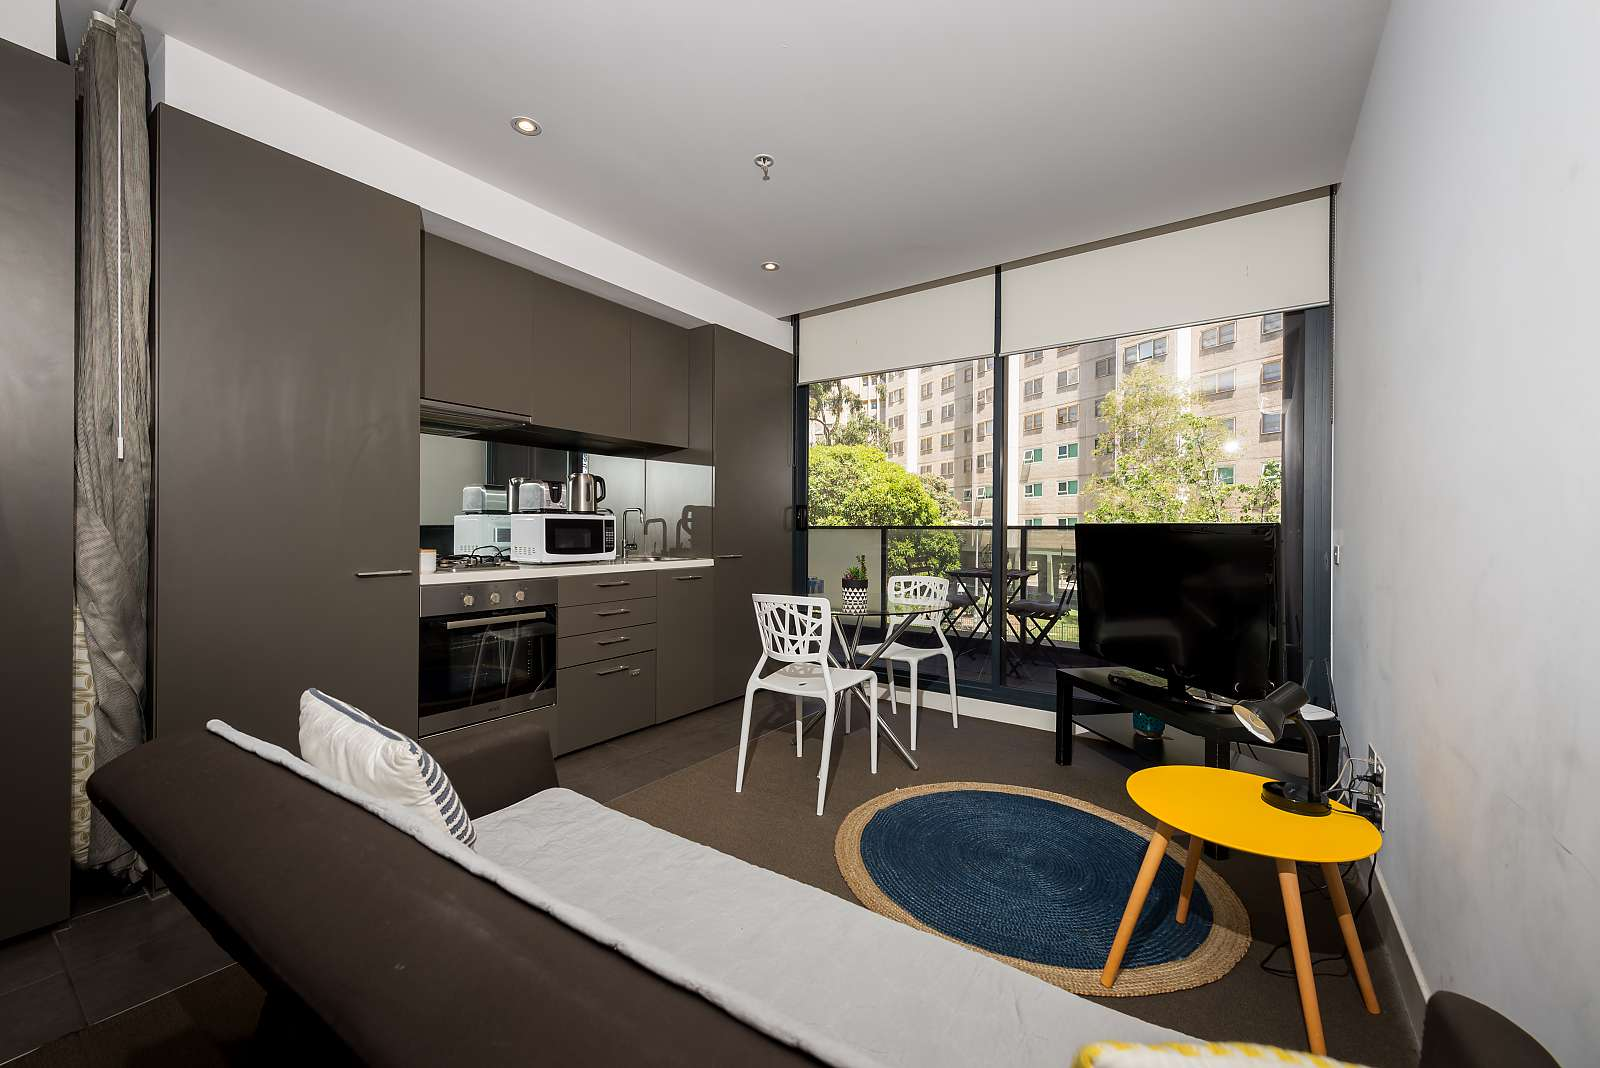 381-Amazing-Accommodtions-accomodation-South-Yarra